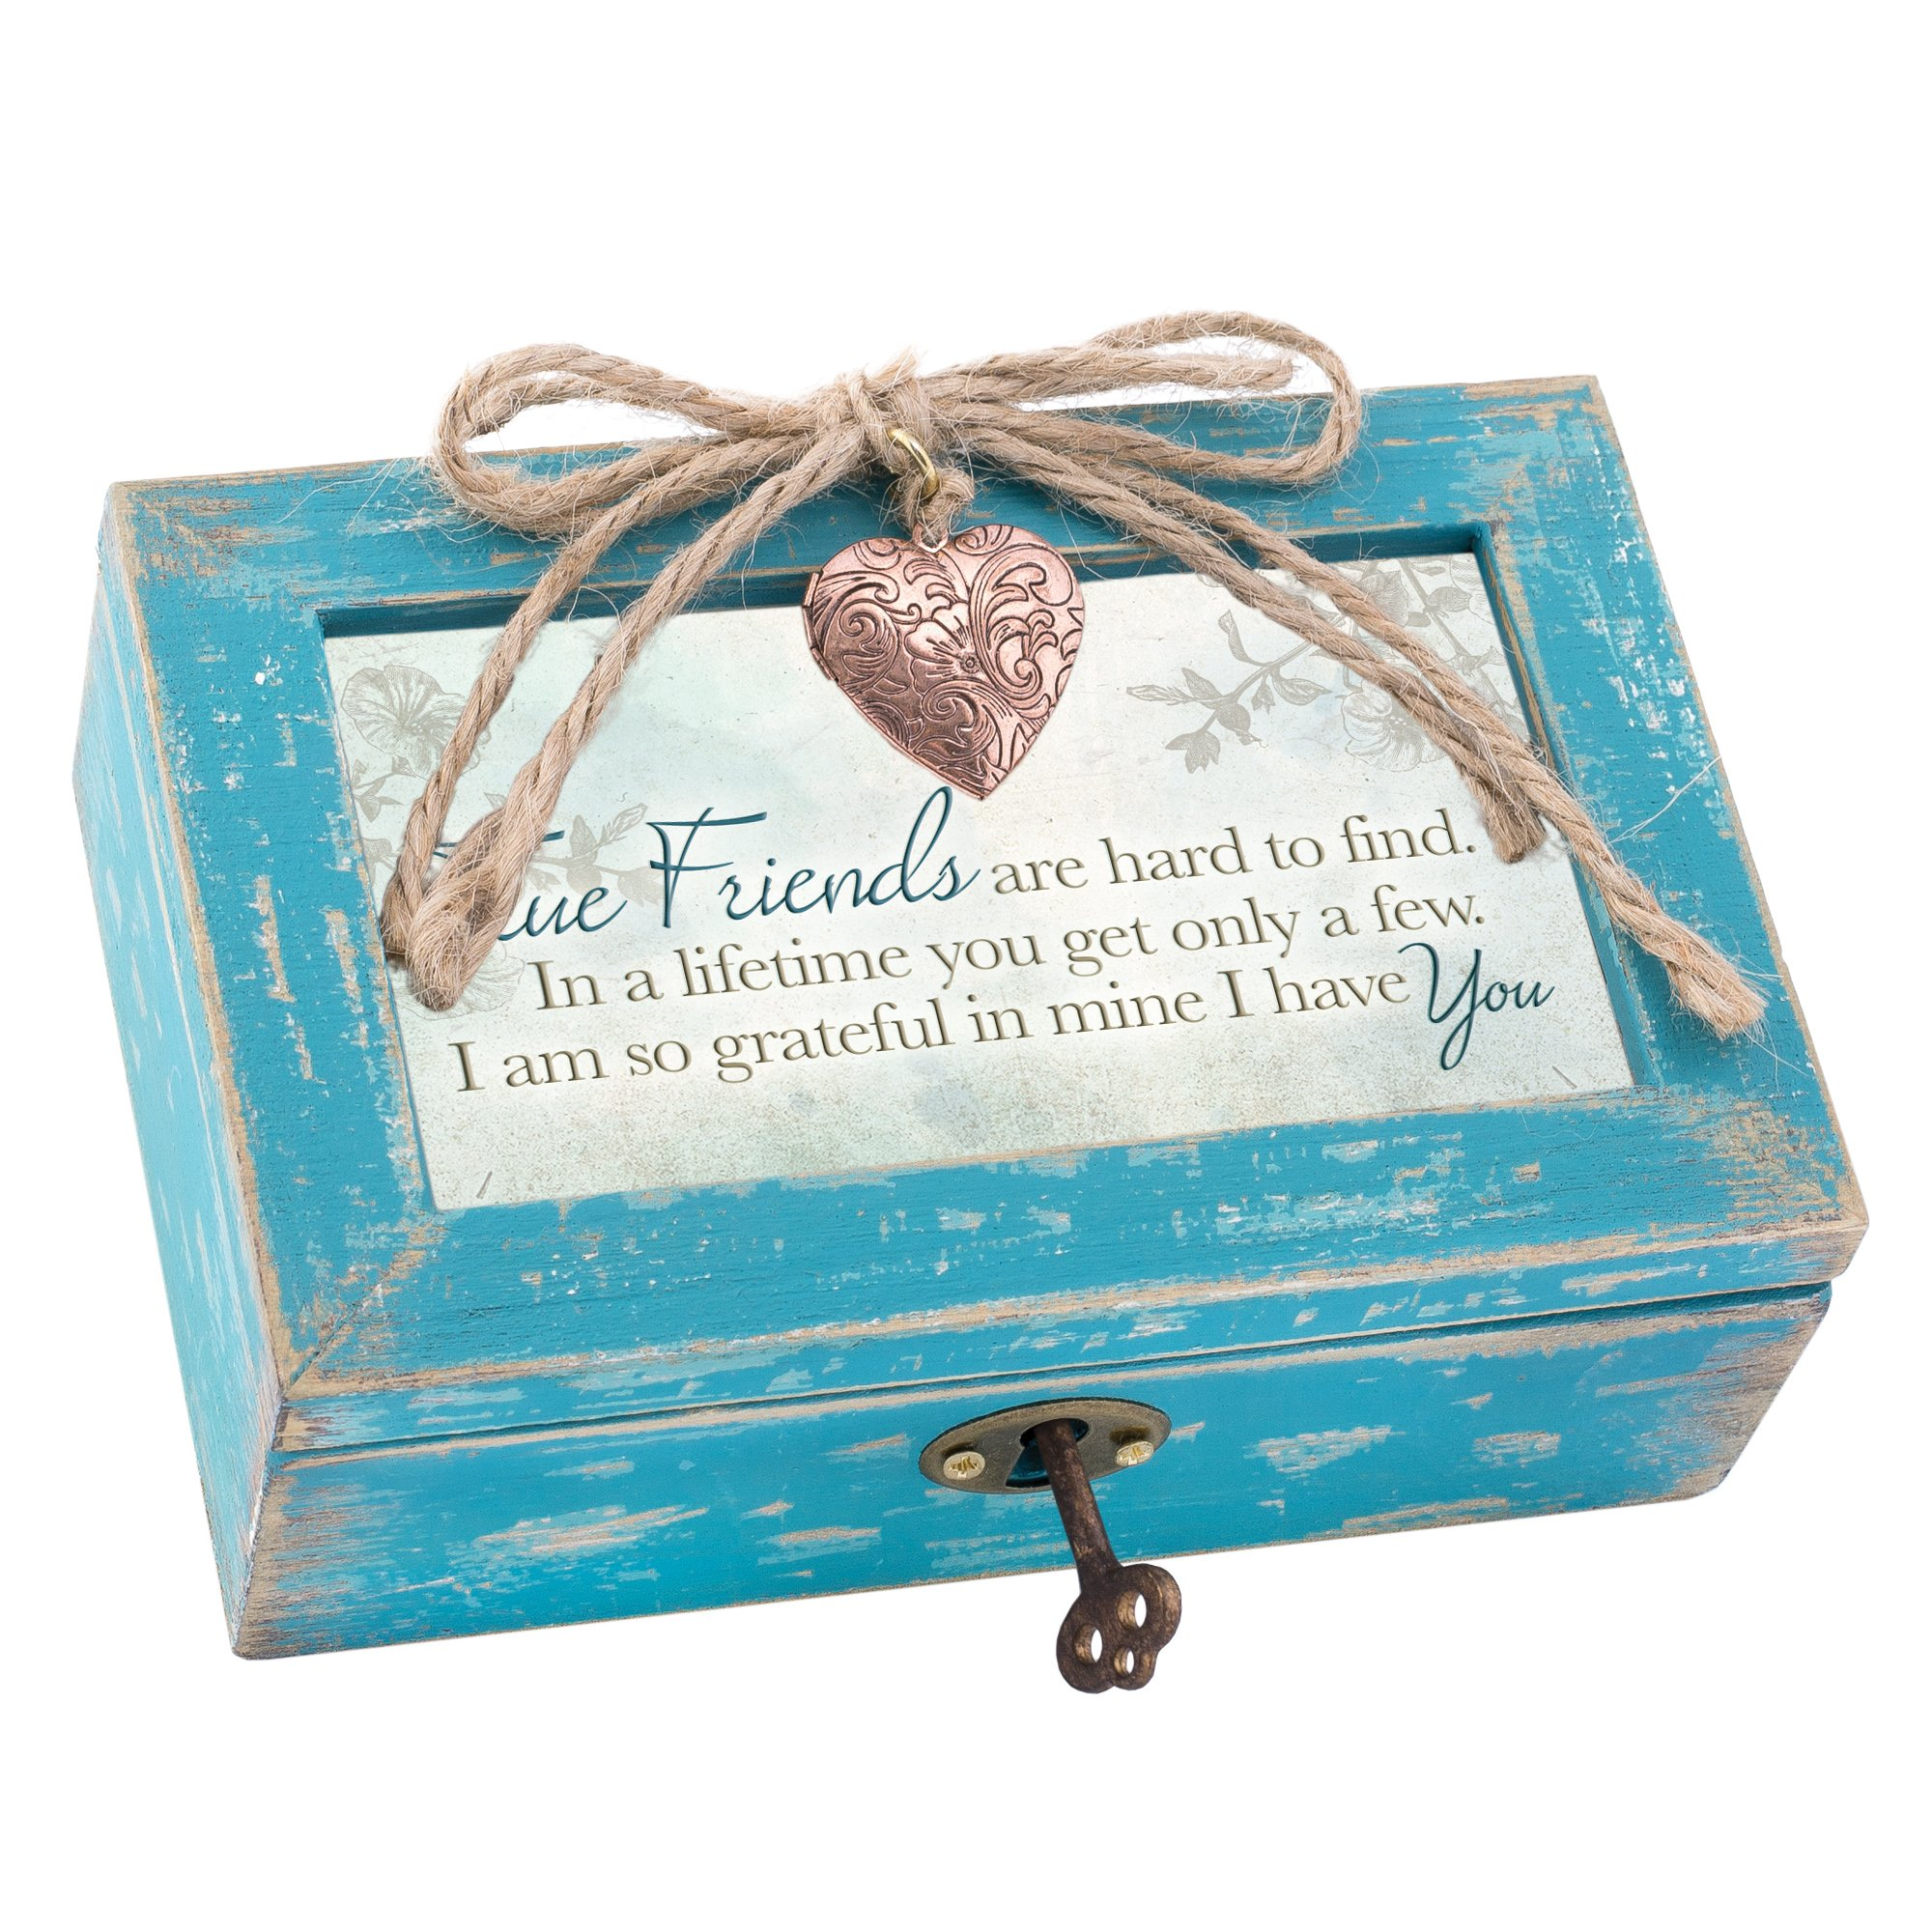 True Friends Grateful Teal Wood Locket Jewelry Music Box Plays Tune That's What Friends are for by Cottage Garden